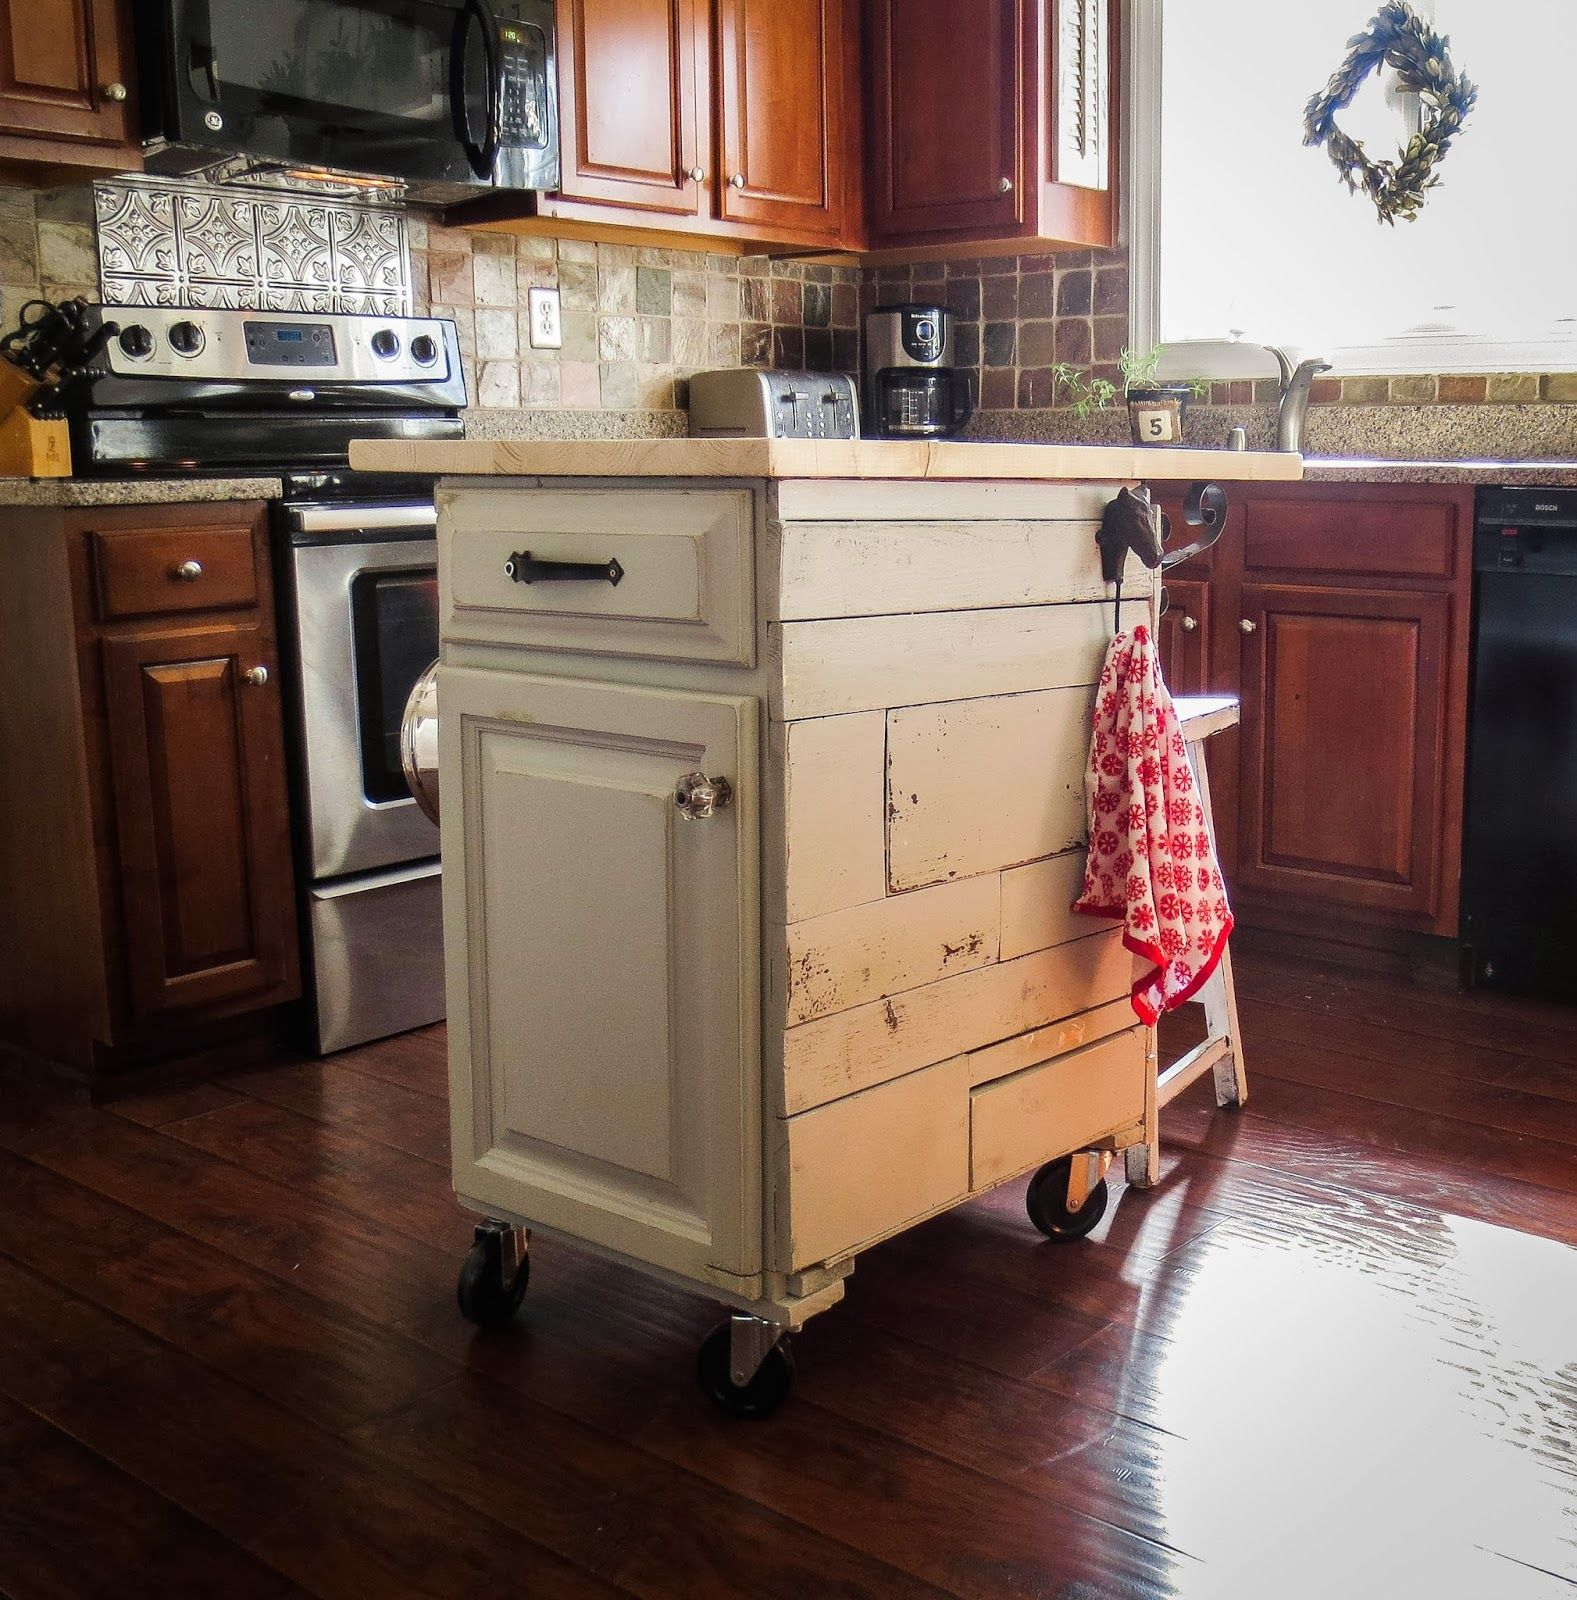 Re Purposed Cabinet Turned Into A Mobile Kitchen Cart The Top Is Spruce Wood That Looks Li Mobile Kitchen Island Modern Kitchen Storage Kitchen Cabinet Design